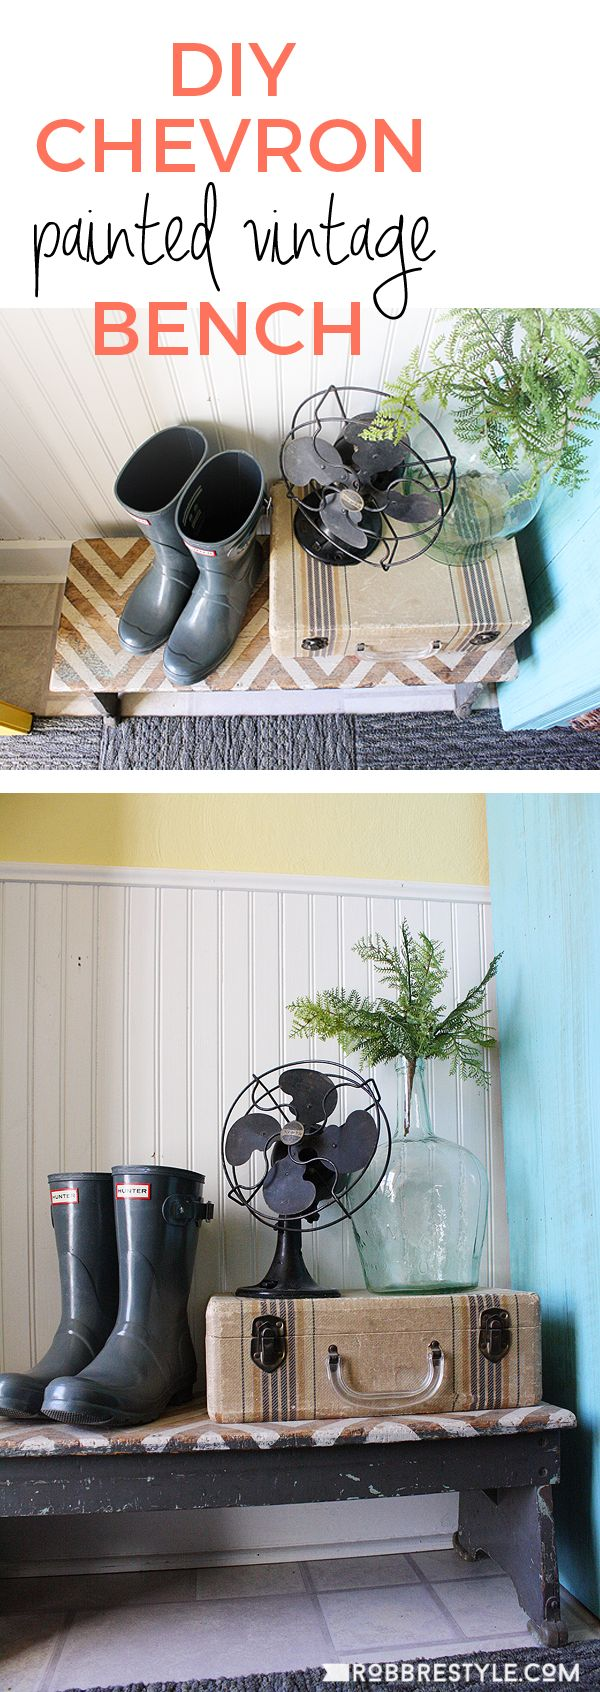 Chevron Painted Vintage Bench by RobbRestyle.com